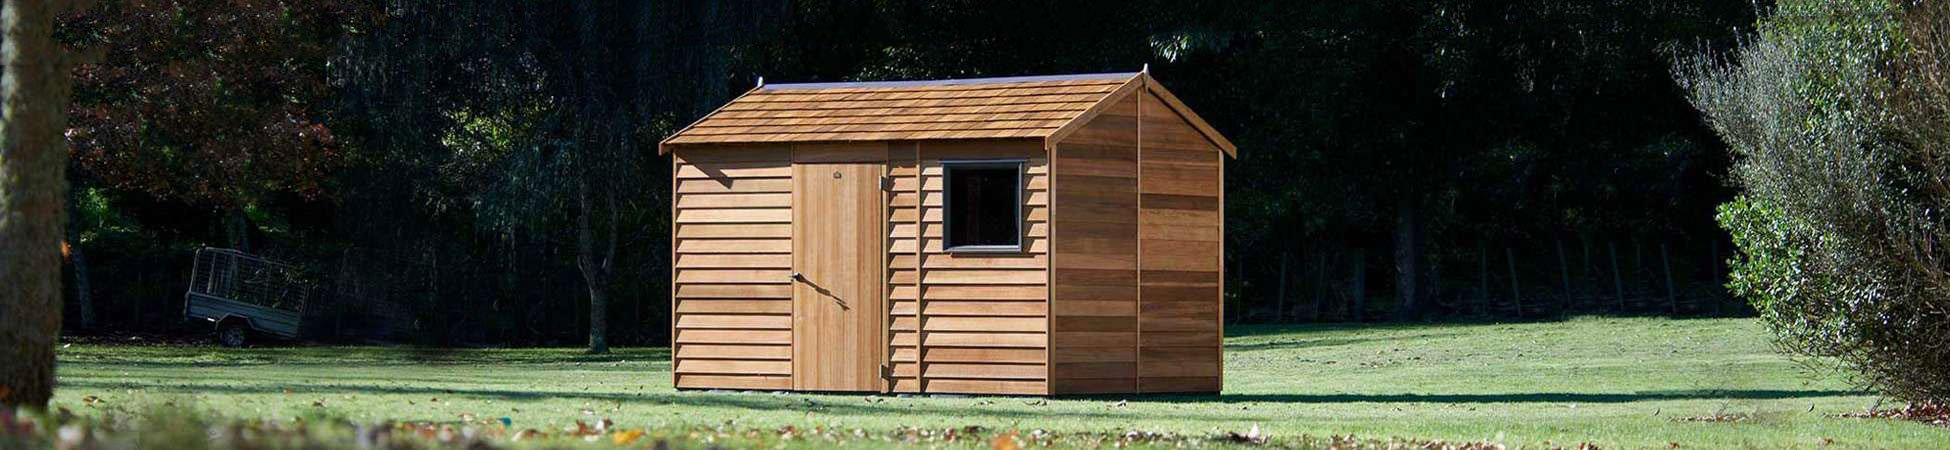 Cedar Cambridge Locker Timber Garden Shed